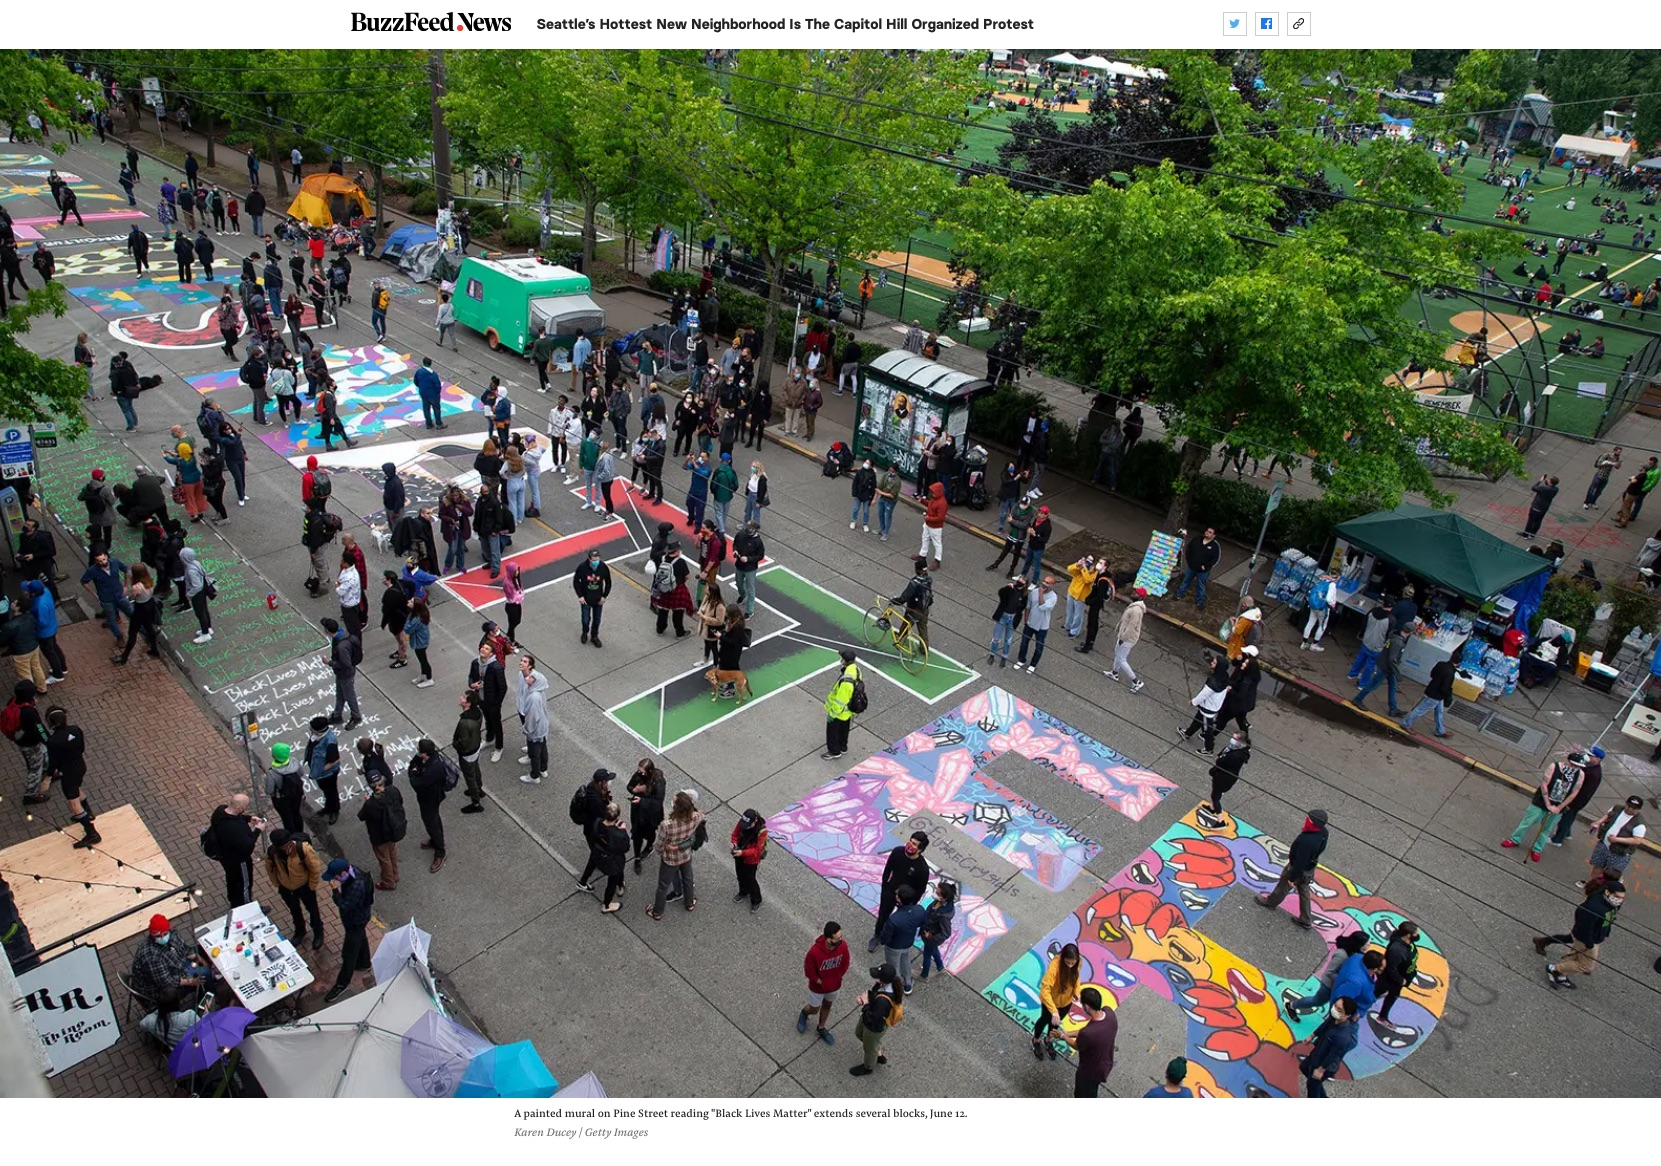 """{quote}Seattle's Hottest New Neighborhood Is The Capitol Hill Organized Protest"""" for Getty Images, published in Buzzfeed News, June 16, 2020."""